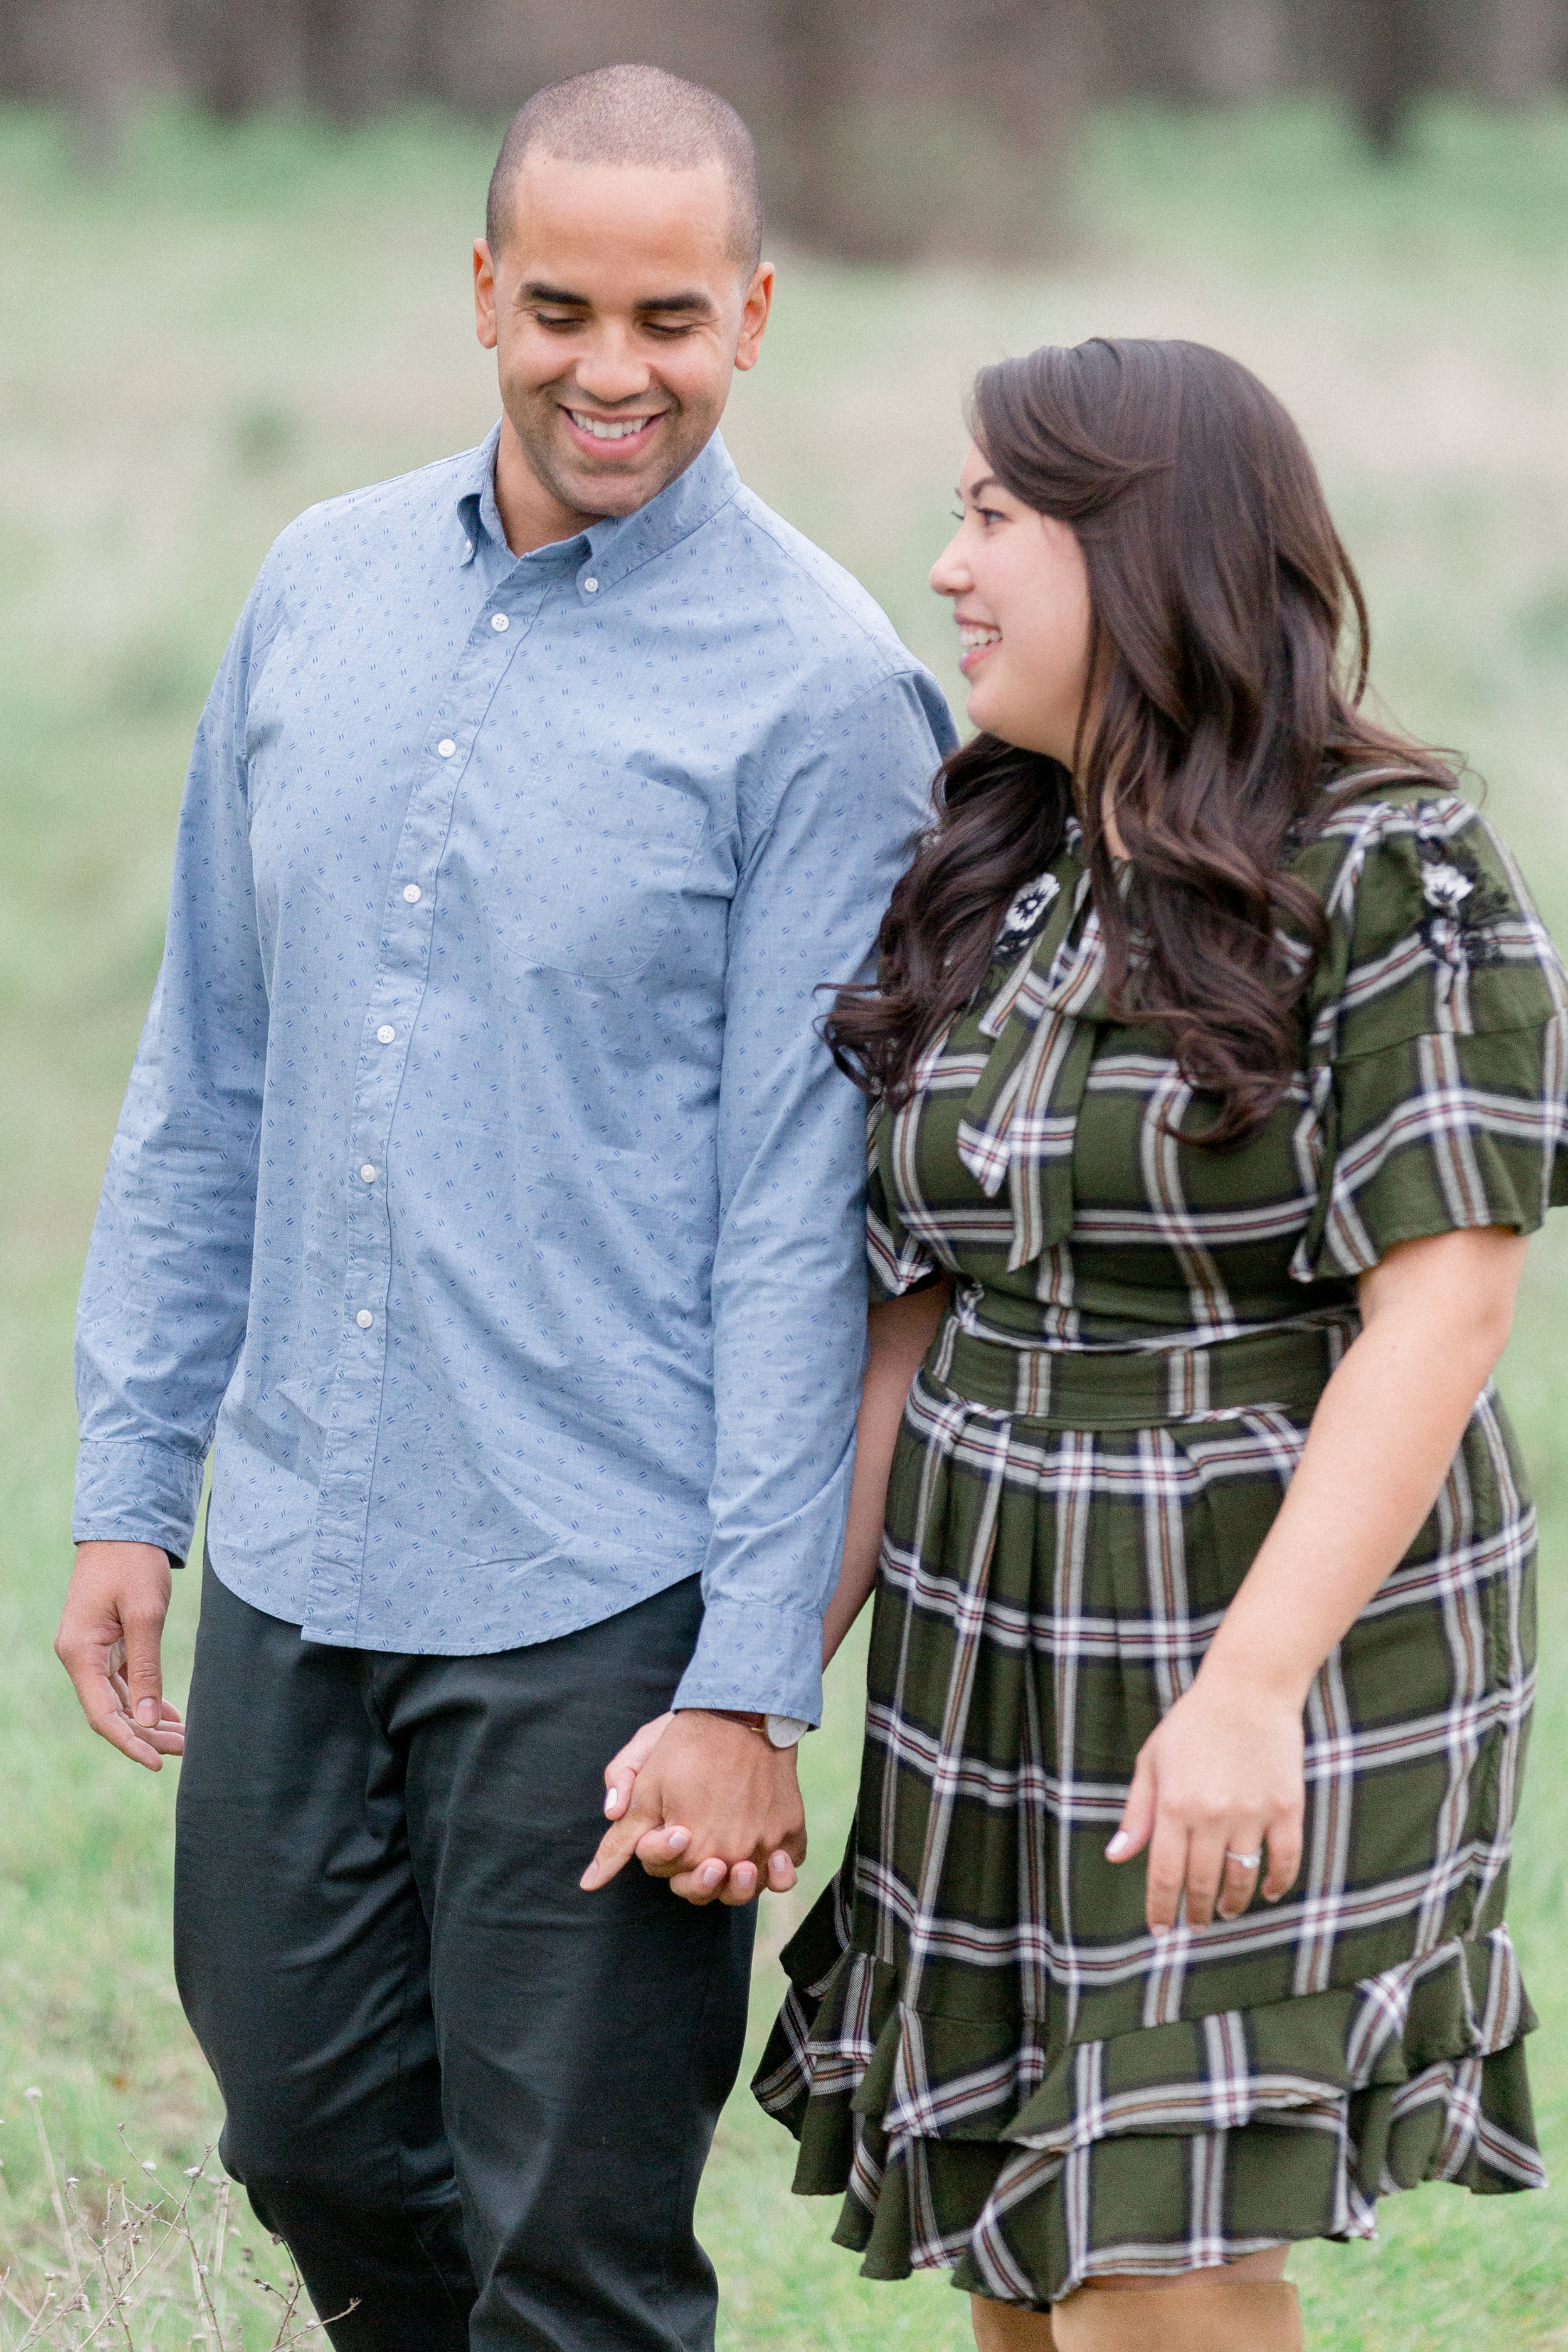 cute-engaged-couple-has-photos-taken-in-Bidwell-Park-Chico-California.jpg